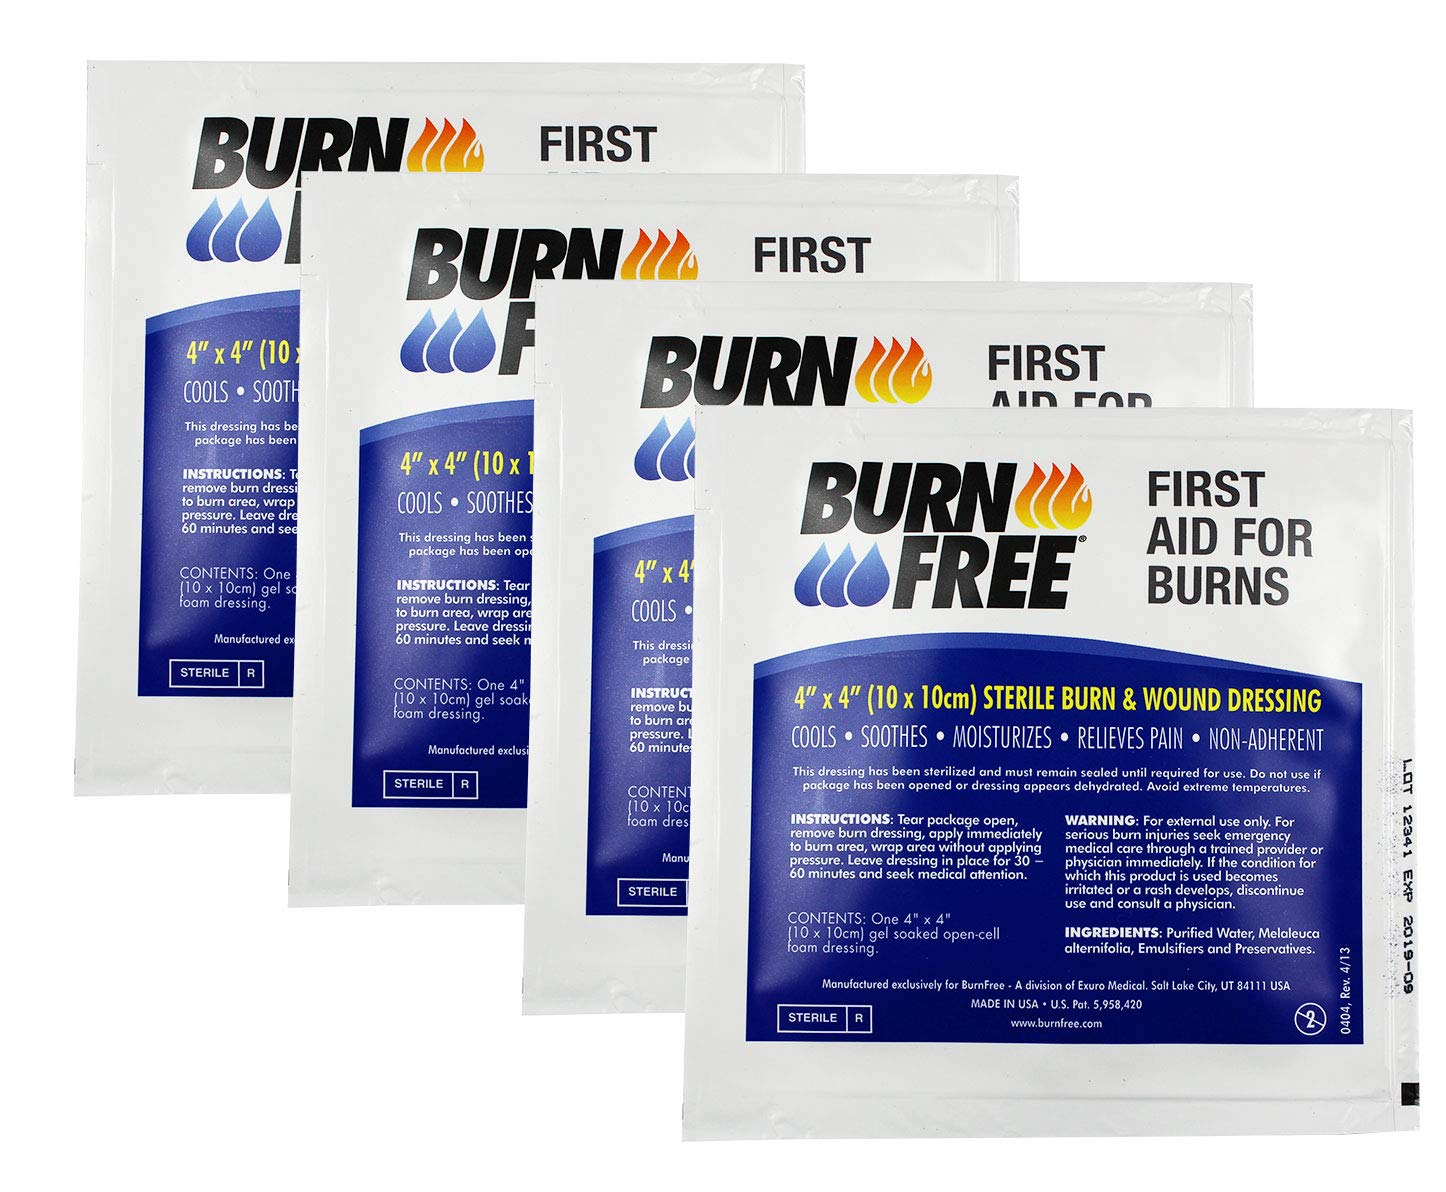 Burn Free Pain Relieving Gel Dressing 4'' x 4'' Sterile Burn & Wound Dressing 4 Pack/Cools, Soothes, Moisturizes, Relieves Pain, Non-Adherent - FIRST AID FOR BURNS